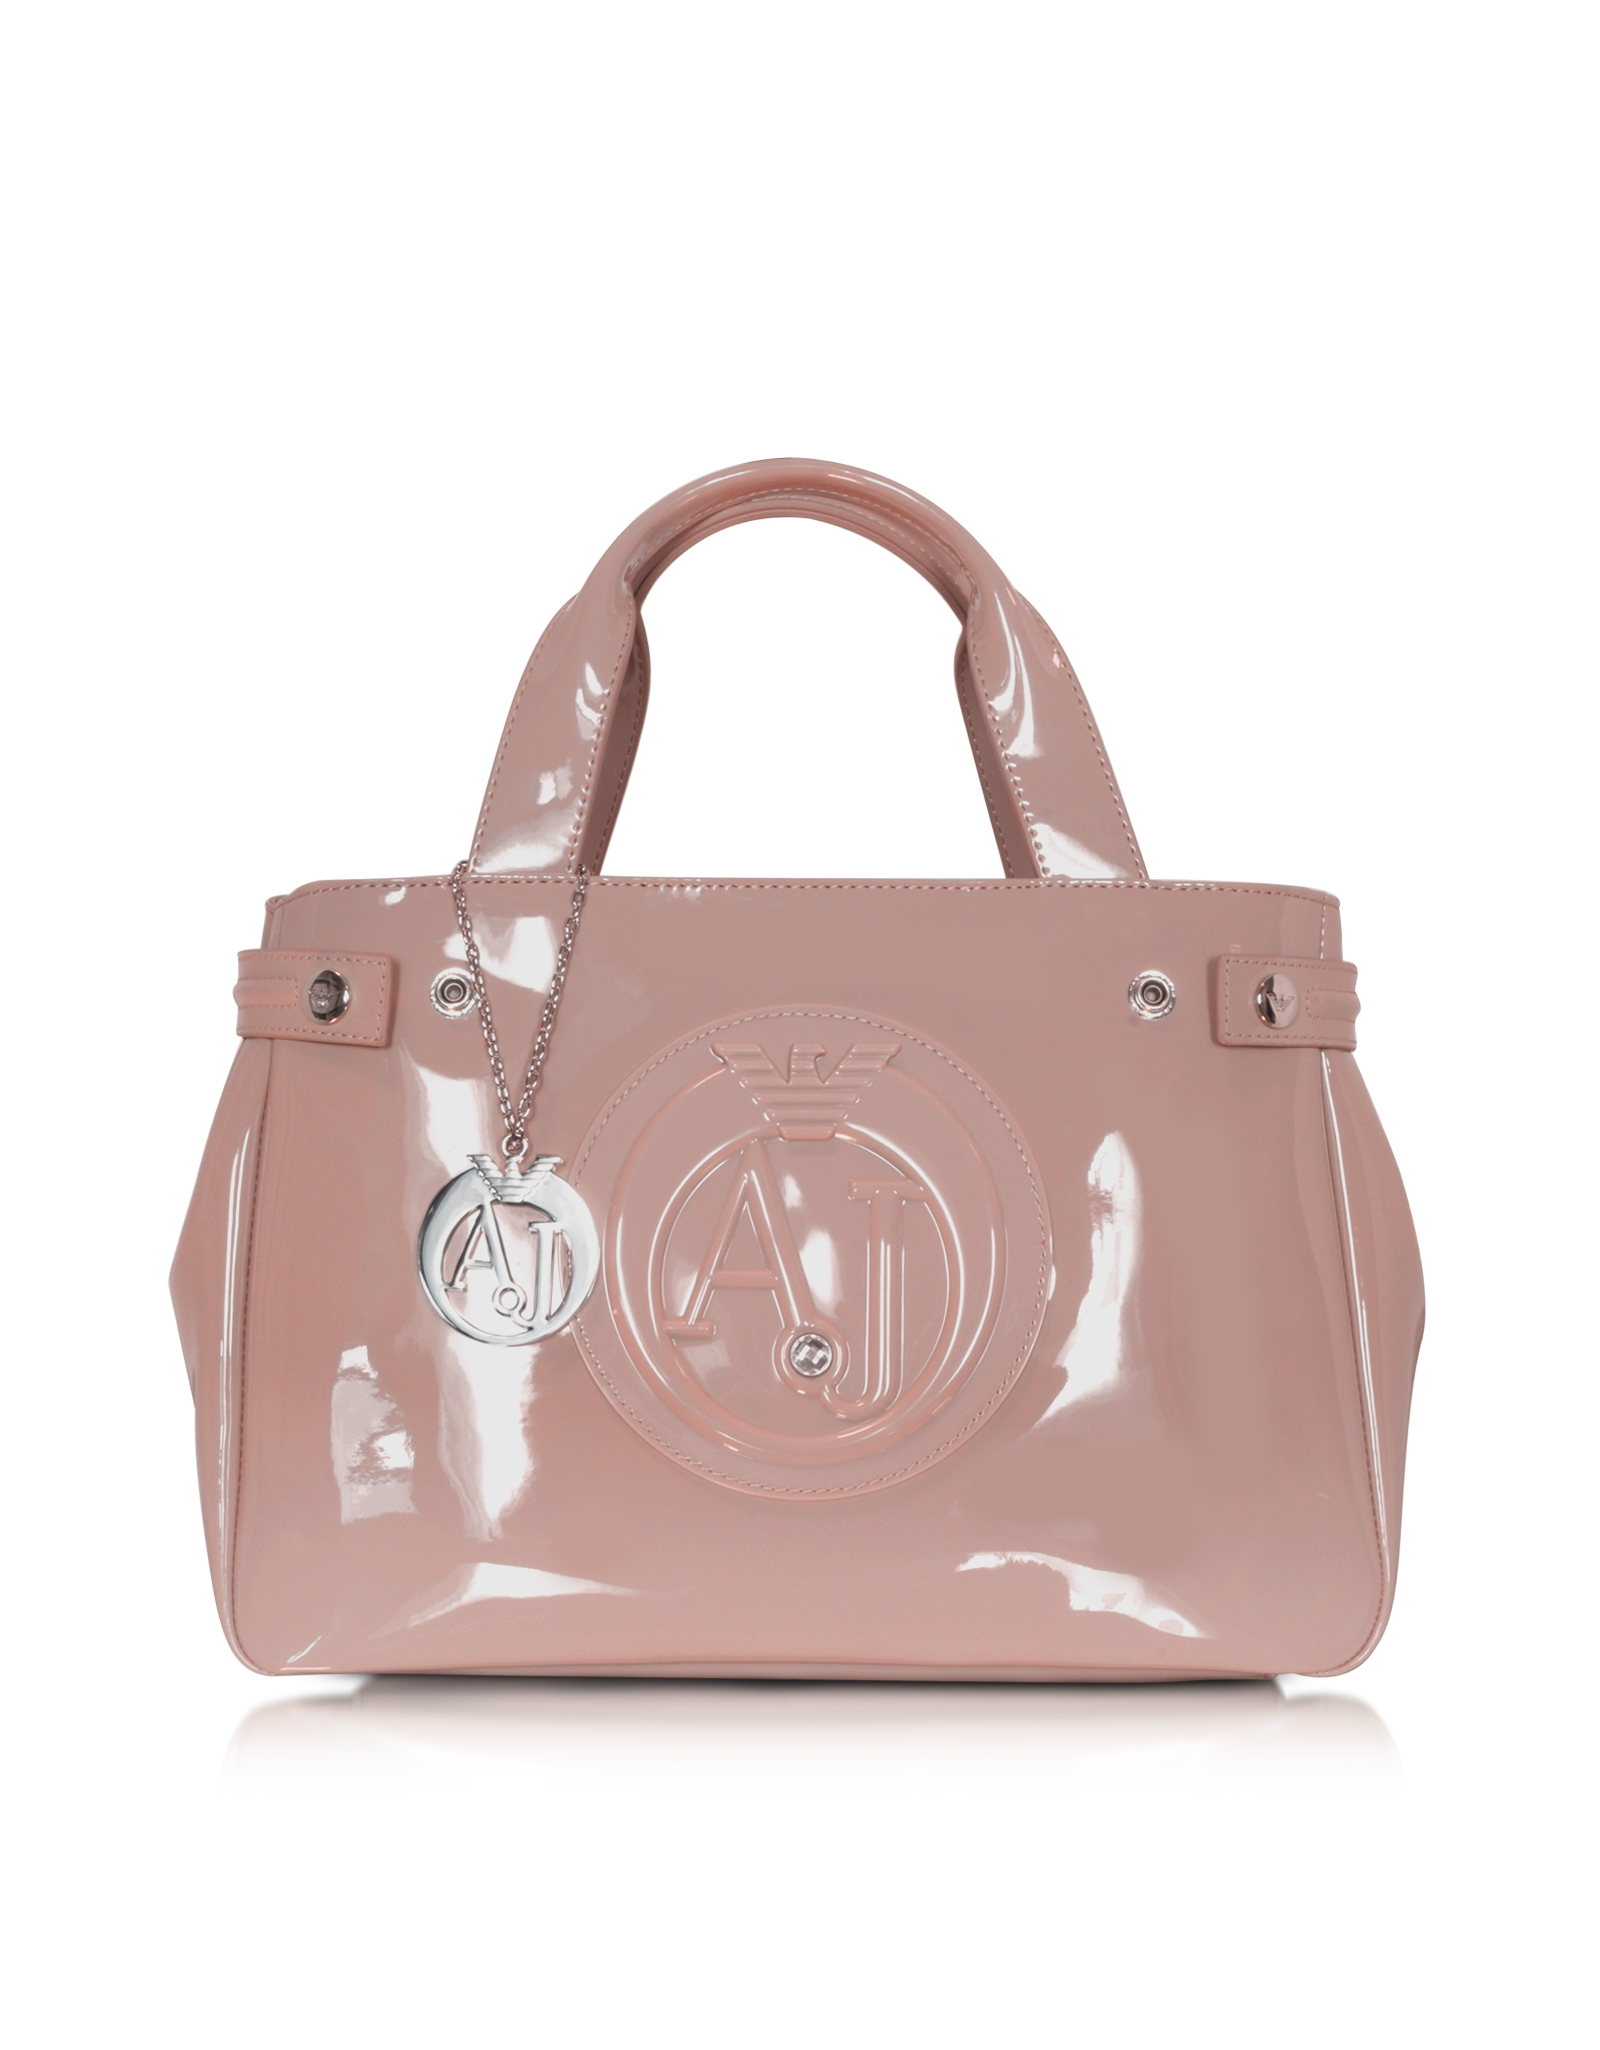 Lyst - Armani Jeans Patent Eco Leather Shopping Bag in Pink d382ddfa58fe7